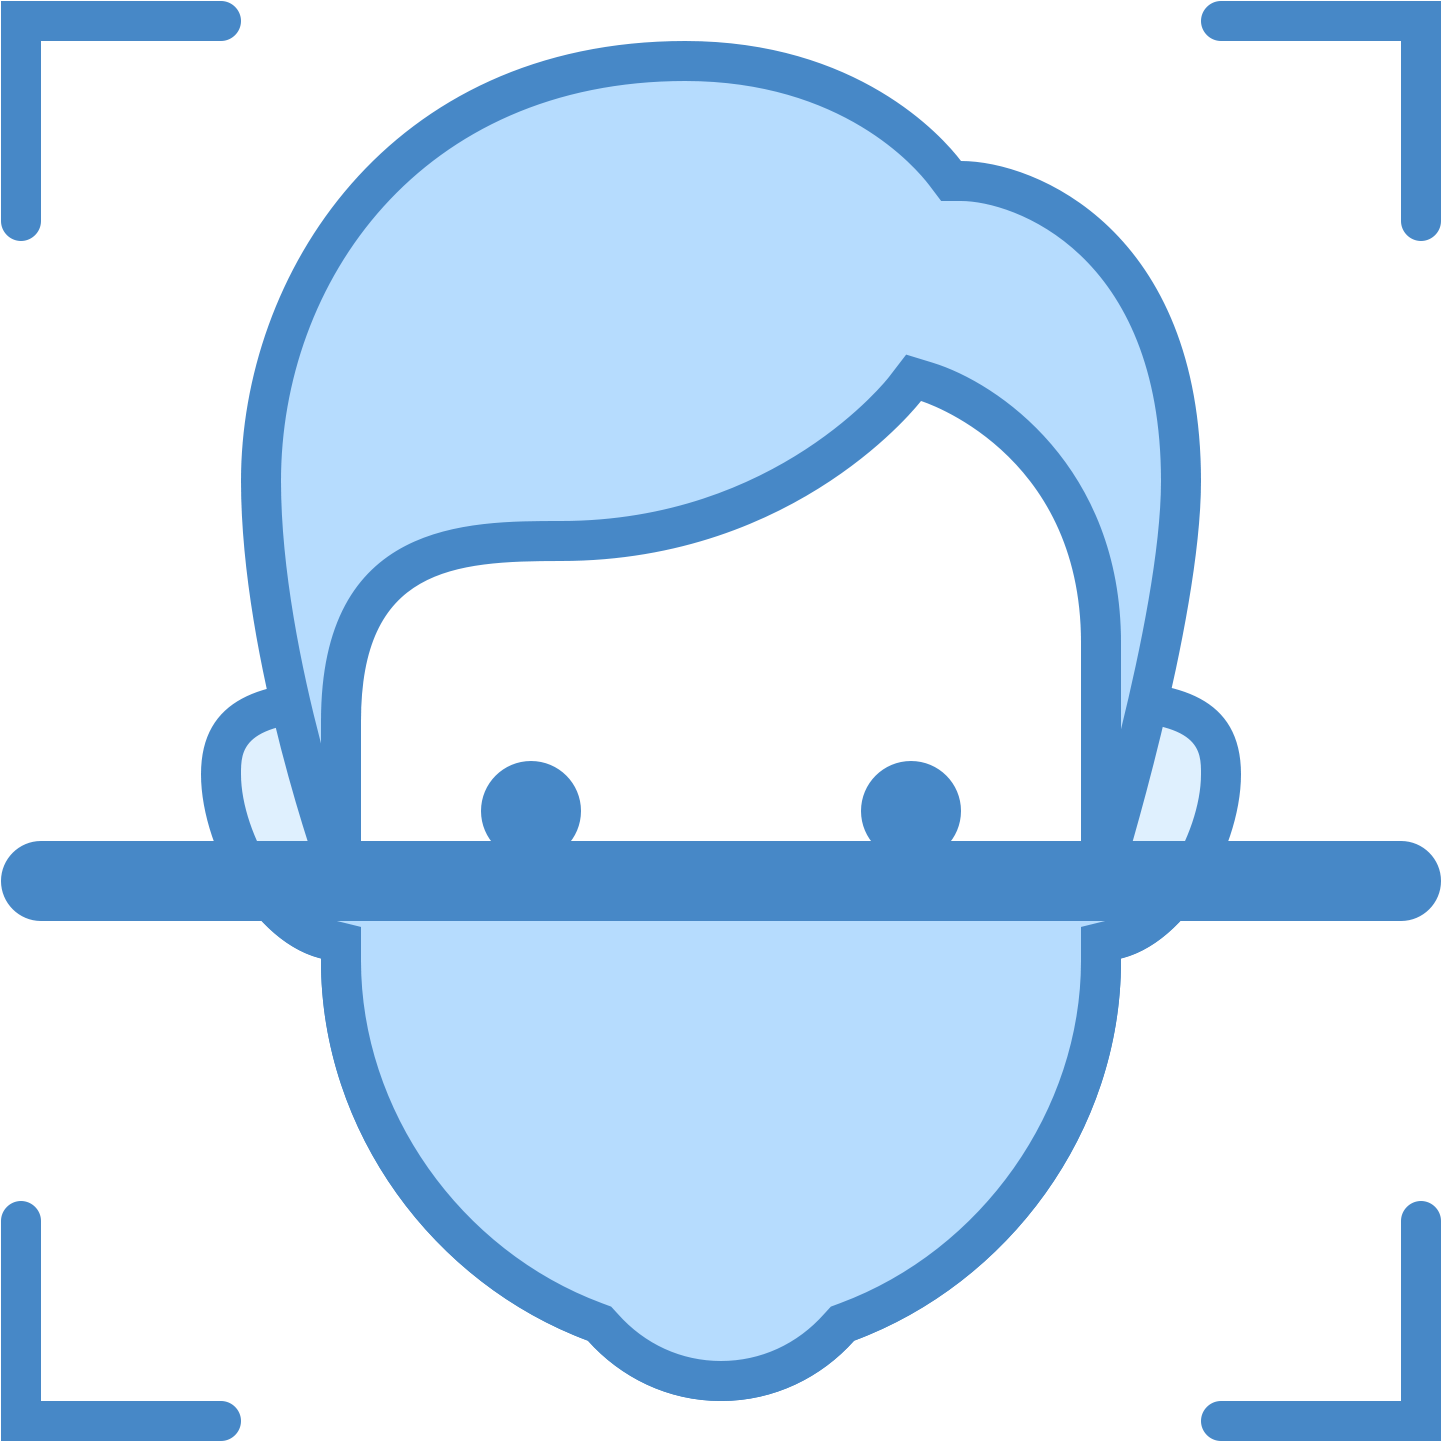 Facial icon face png. Applause clipart recognition